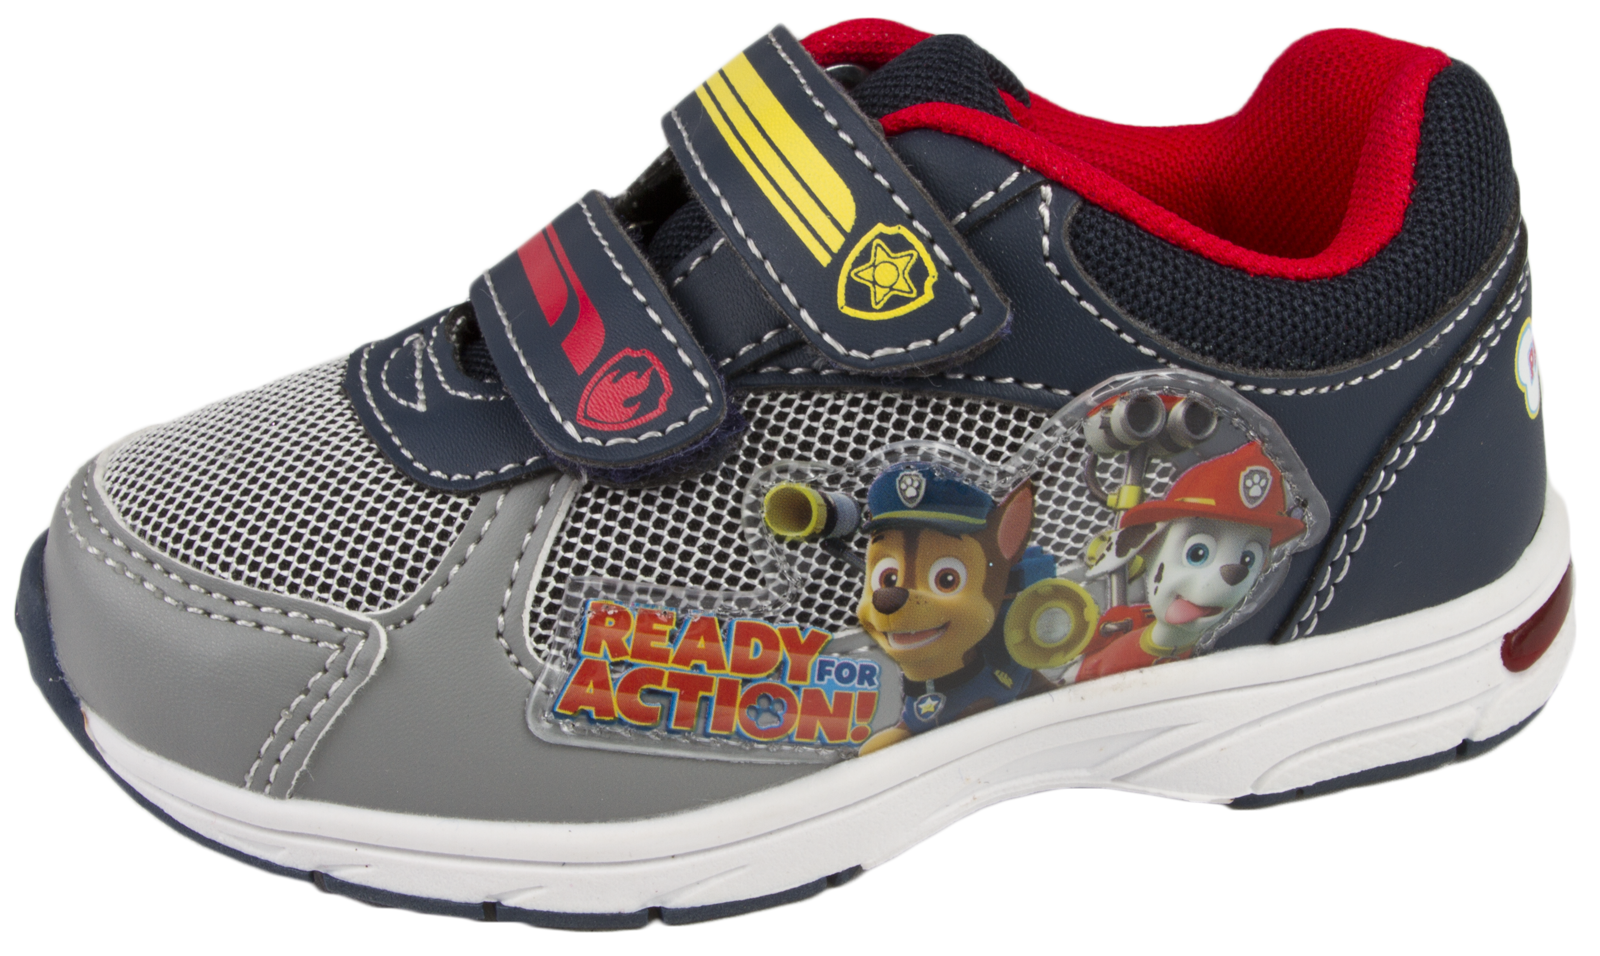 Spiderman High Top Light Up Shoes